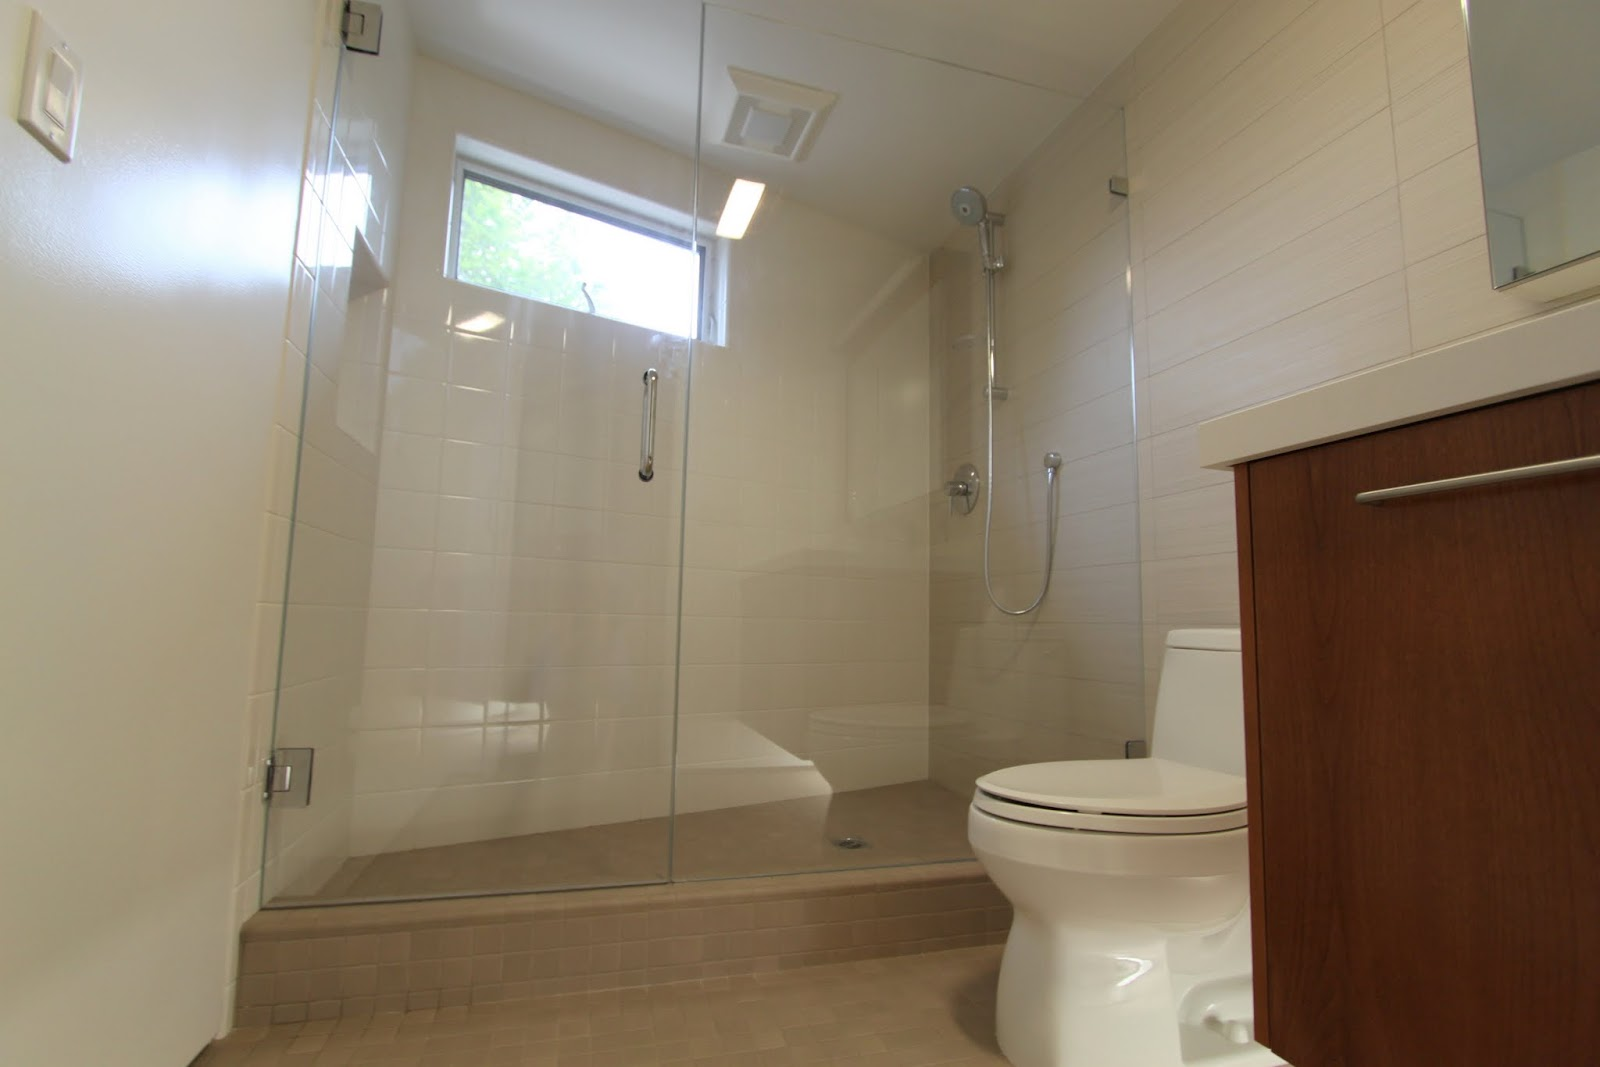 Shower Doors And Paint In Midcentury Modern Bathroom Remodel Mid - Bathroom remodel new port richey